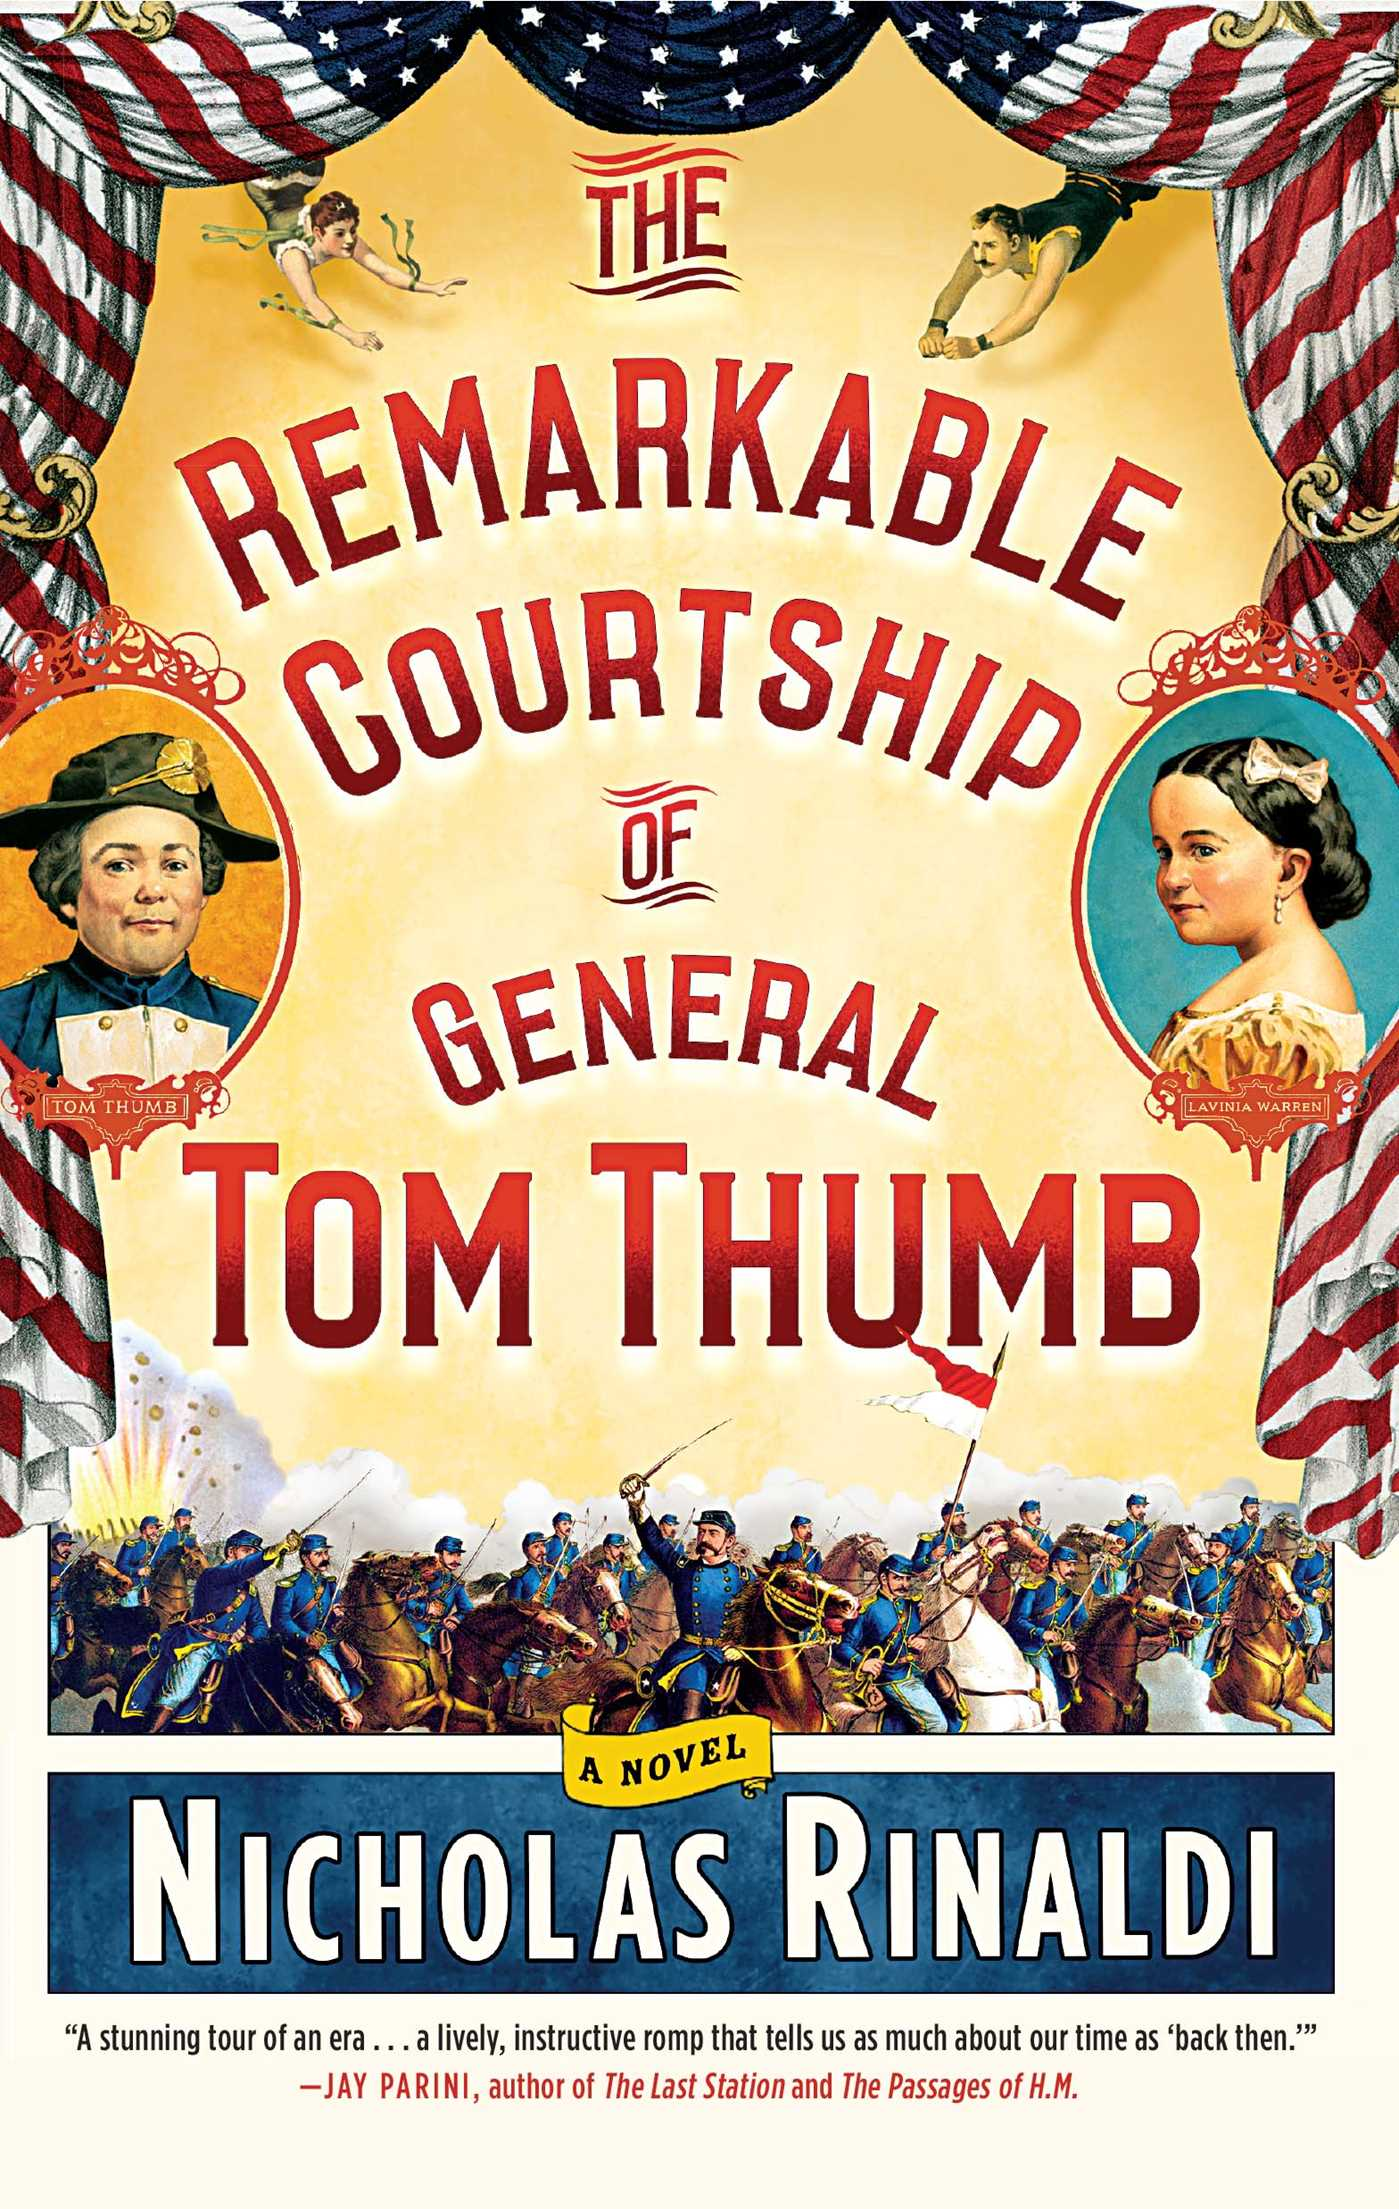 The-remarkable-courtship-of-general-tom-thumb-9781476727332_hr